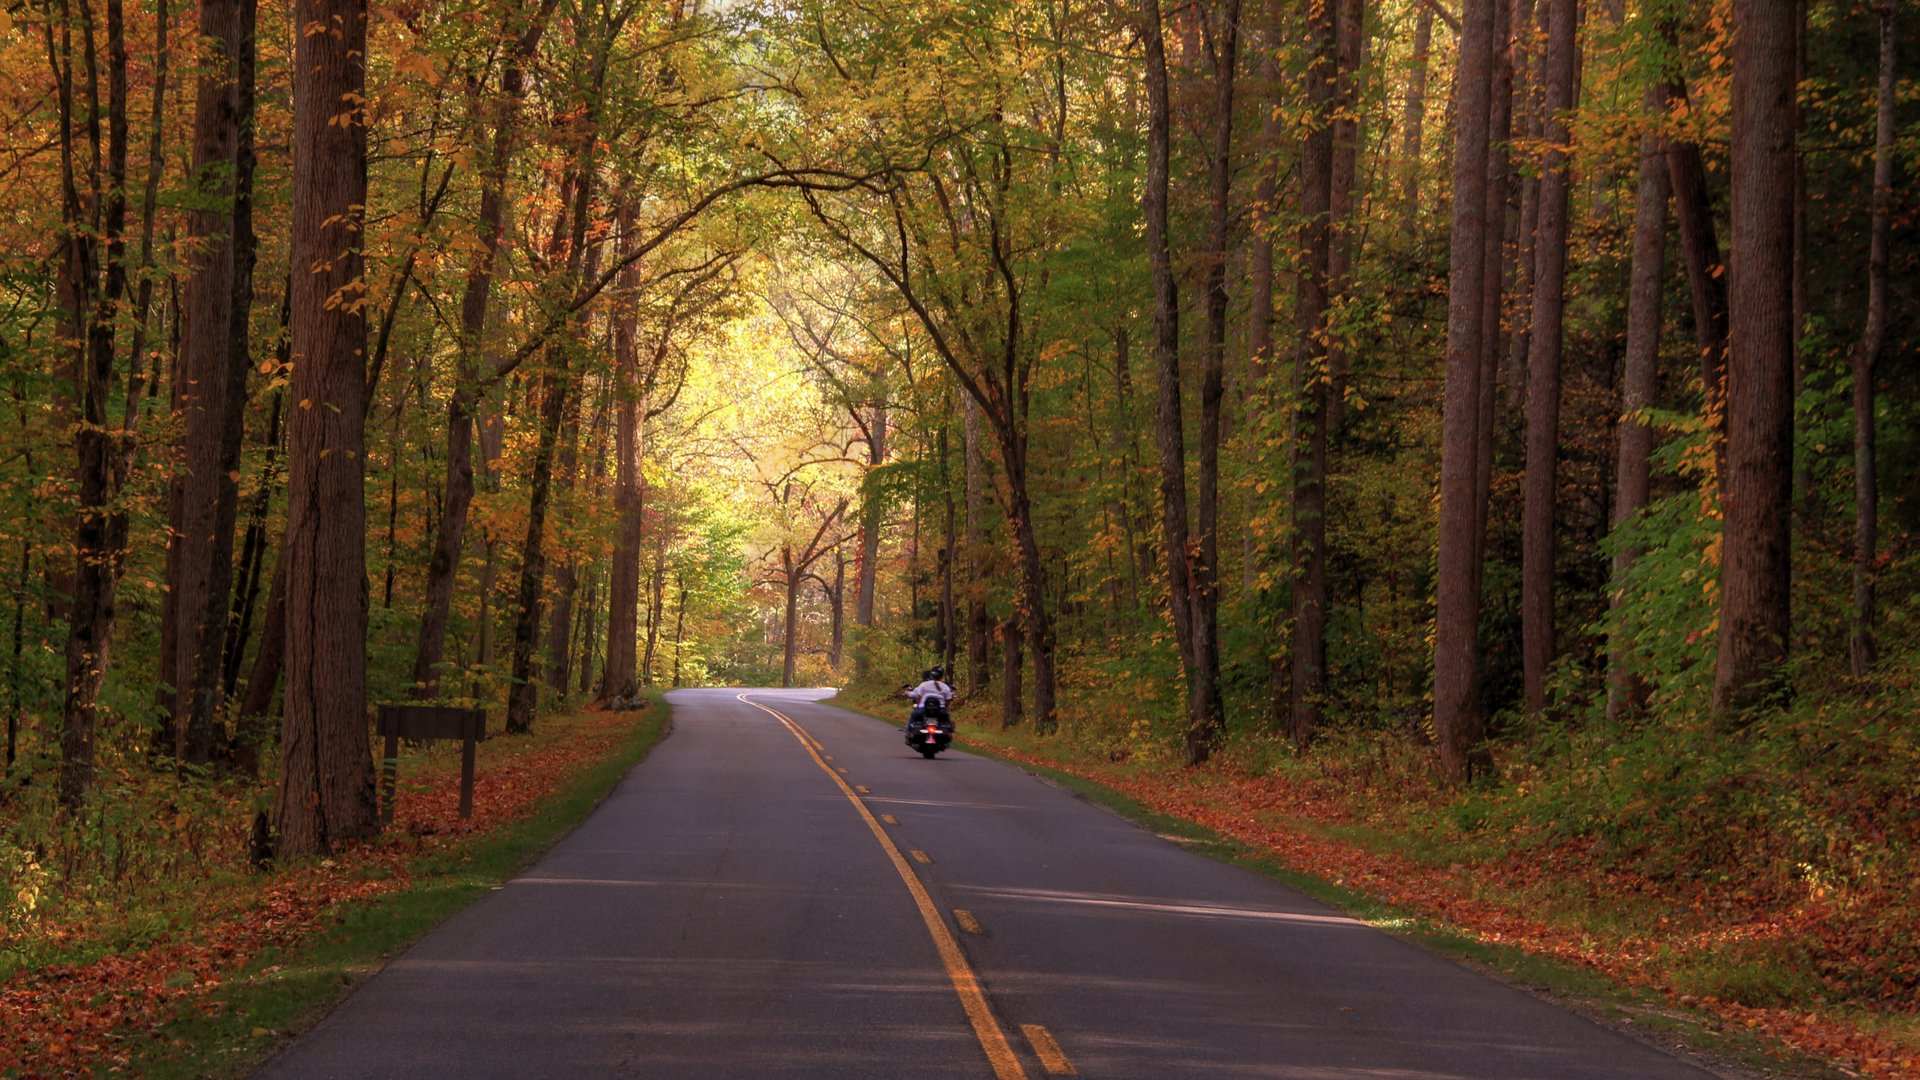 A motorcyclist and friend enjoy a ride on the Little River Road near Metcalf Bottoms in the Great Smoky Mountains national park in autumn 2019